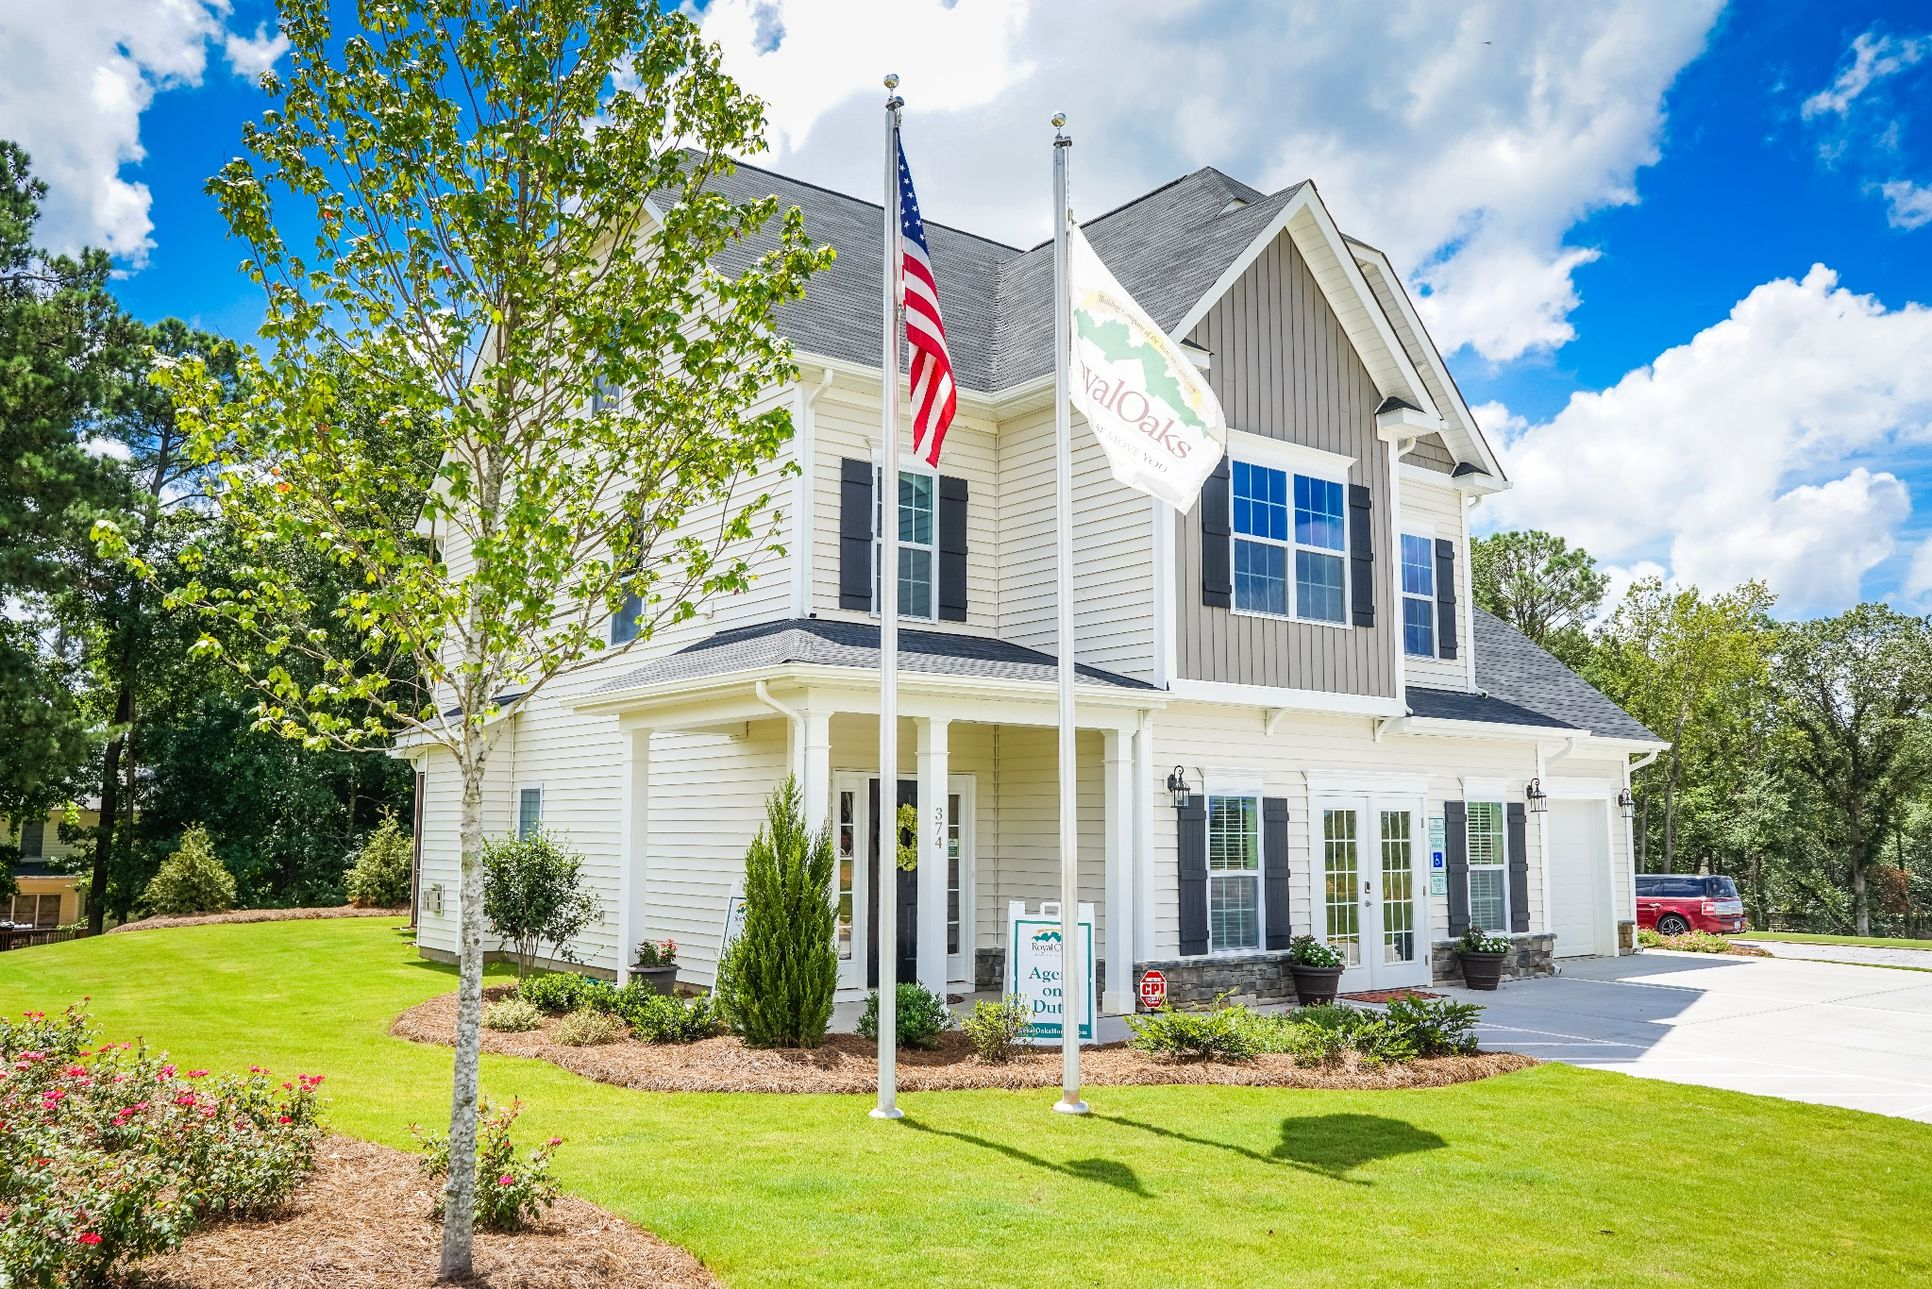 Bristol model home in Clayton NC by Royal Oaks Homes